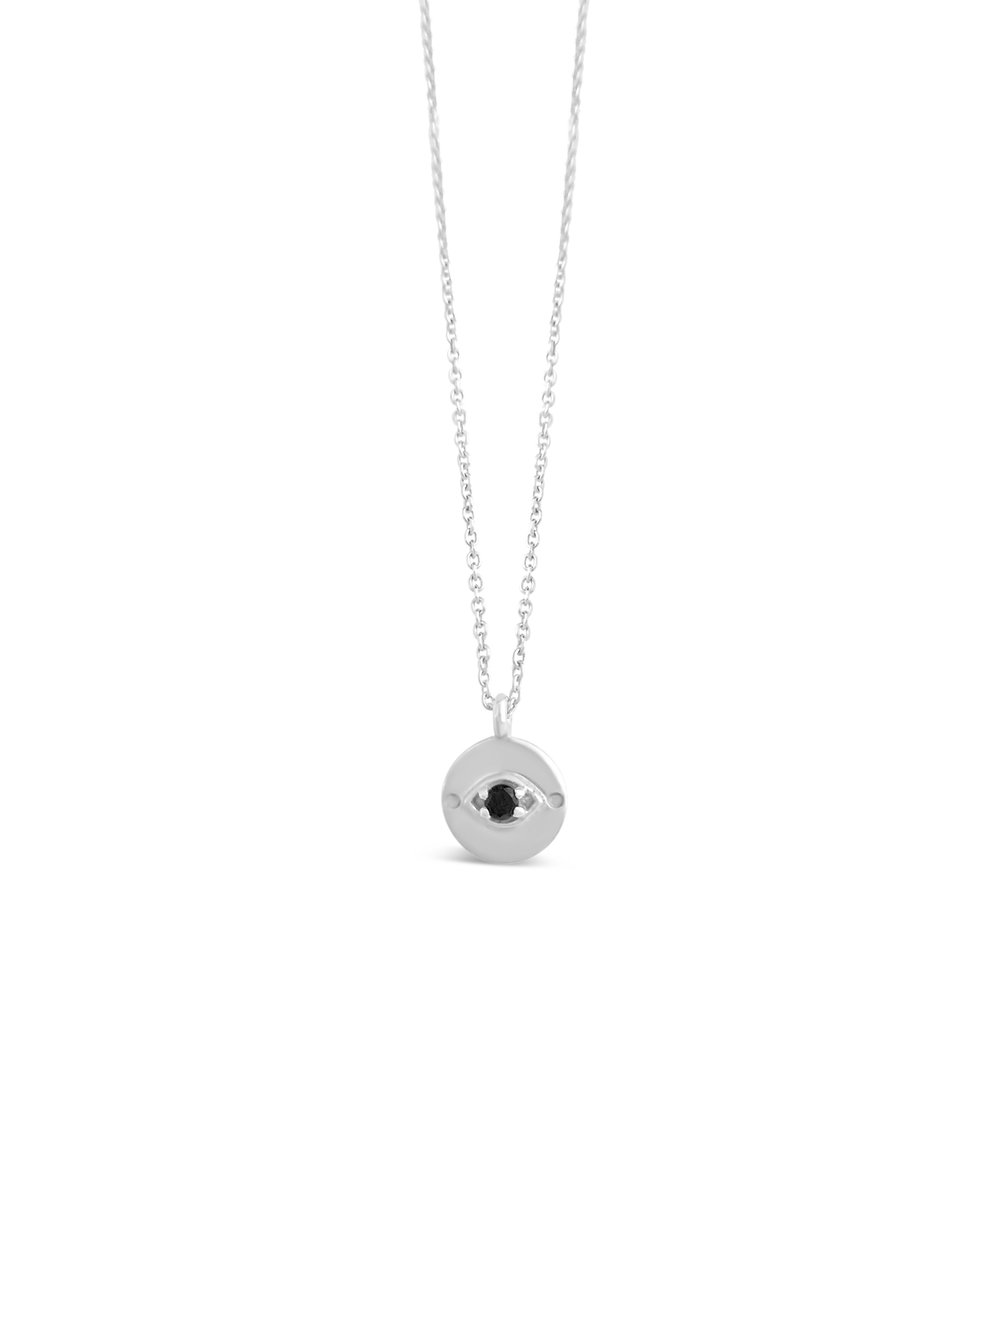 olizz hamsa evil eye compressed necklace crystal geras protection